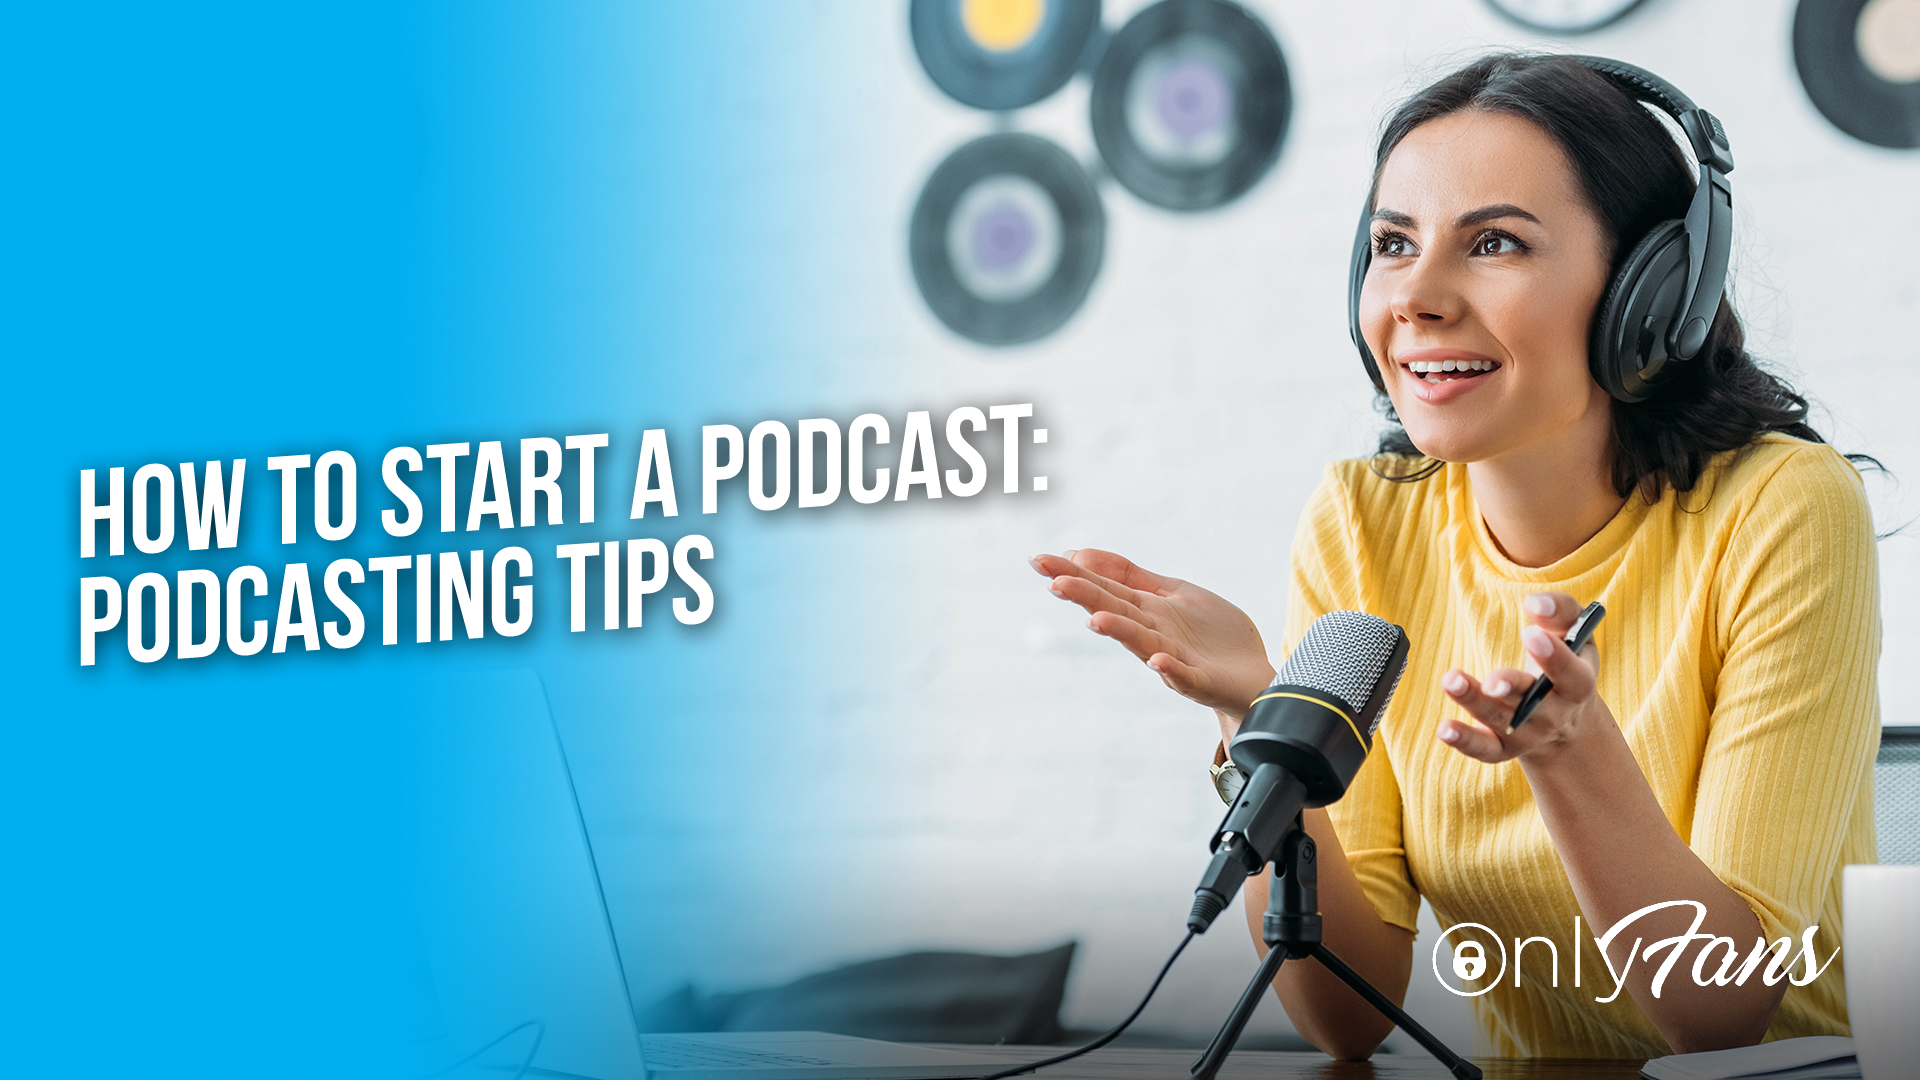 How to Start a Podcast: Podcasting Tips